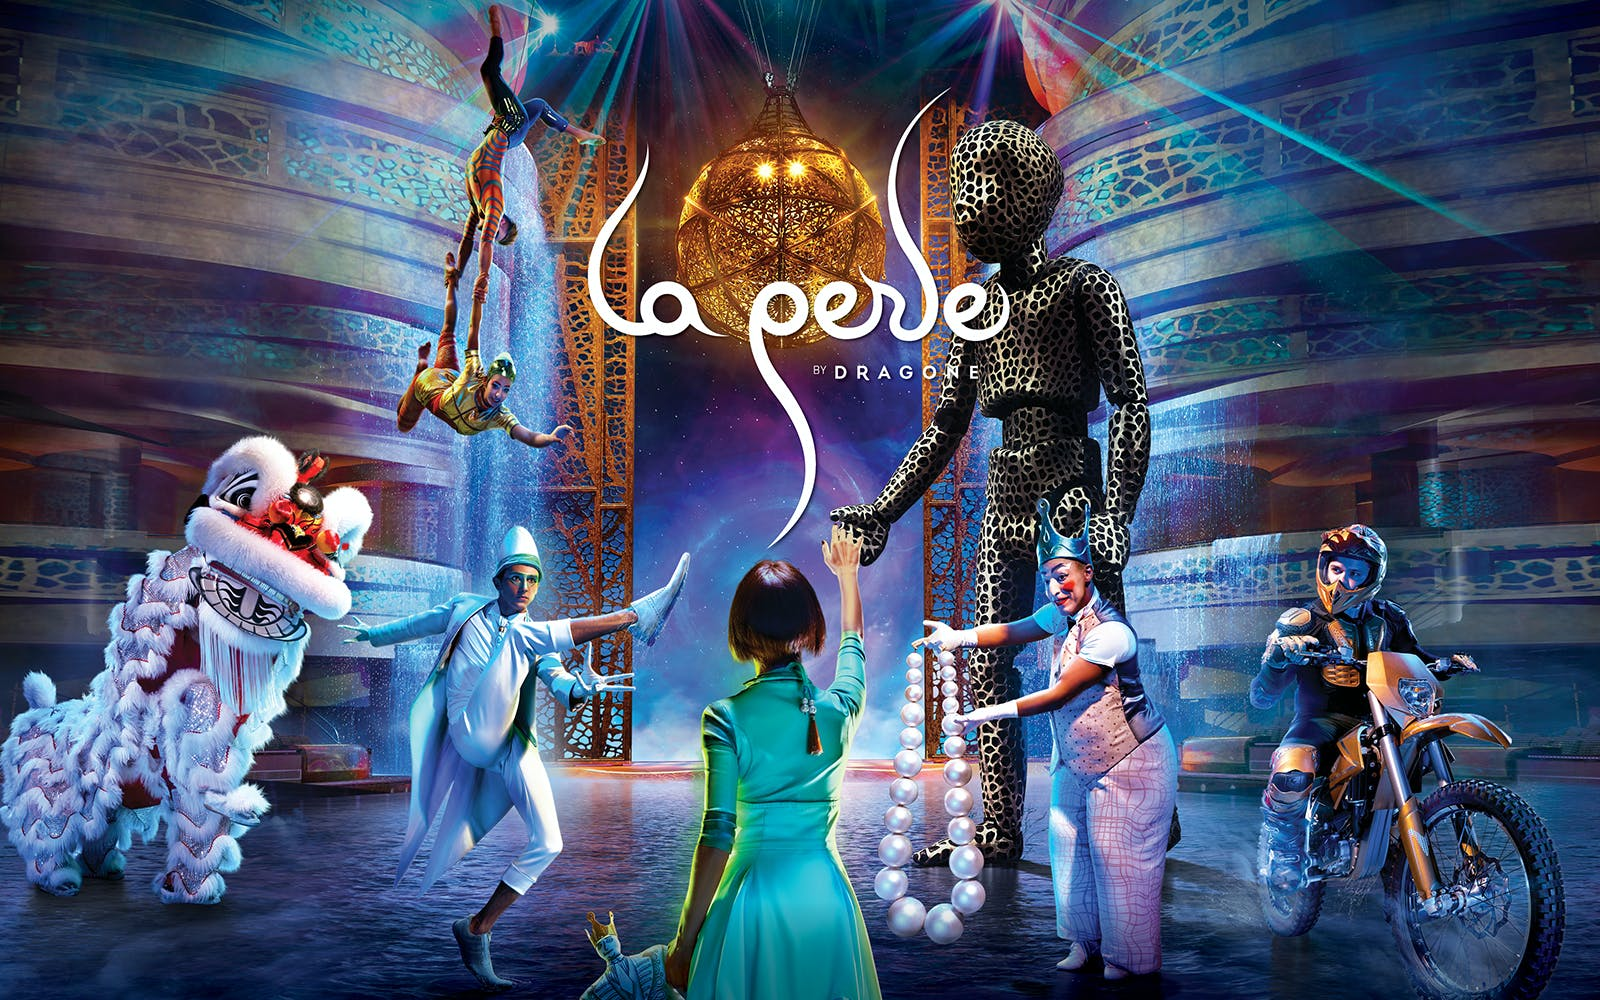 La Perle by Dragone